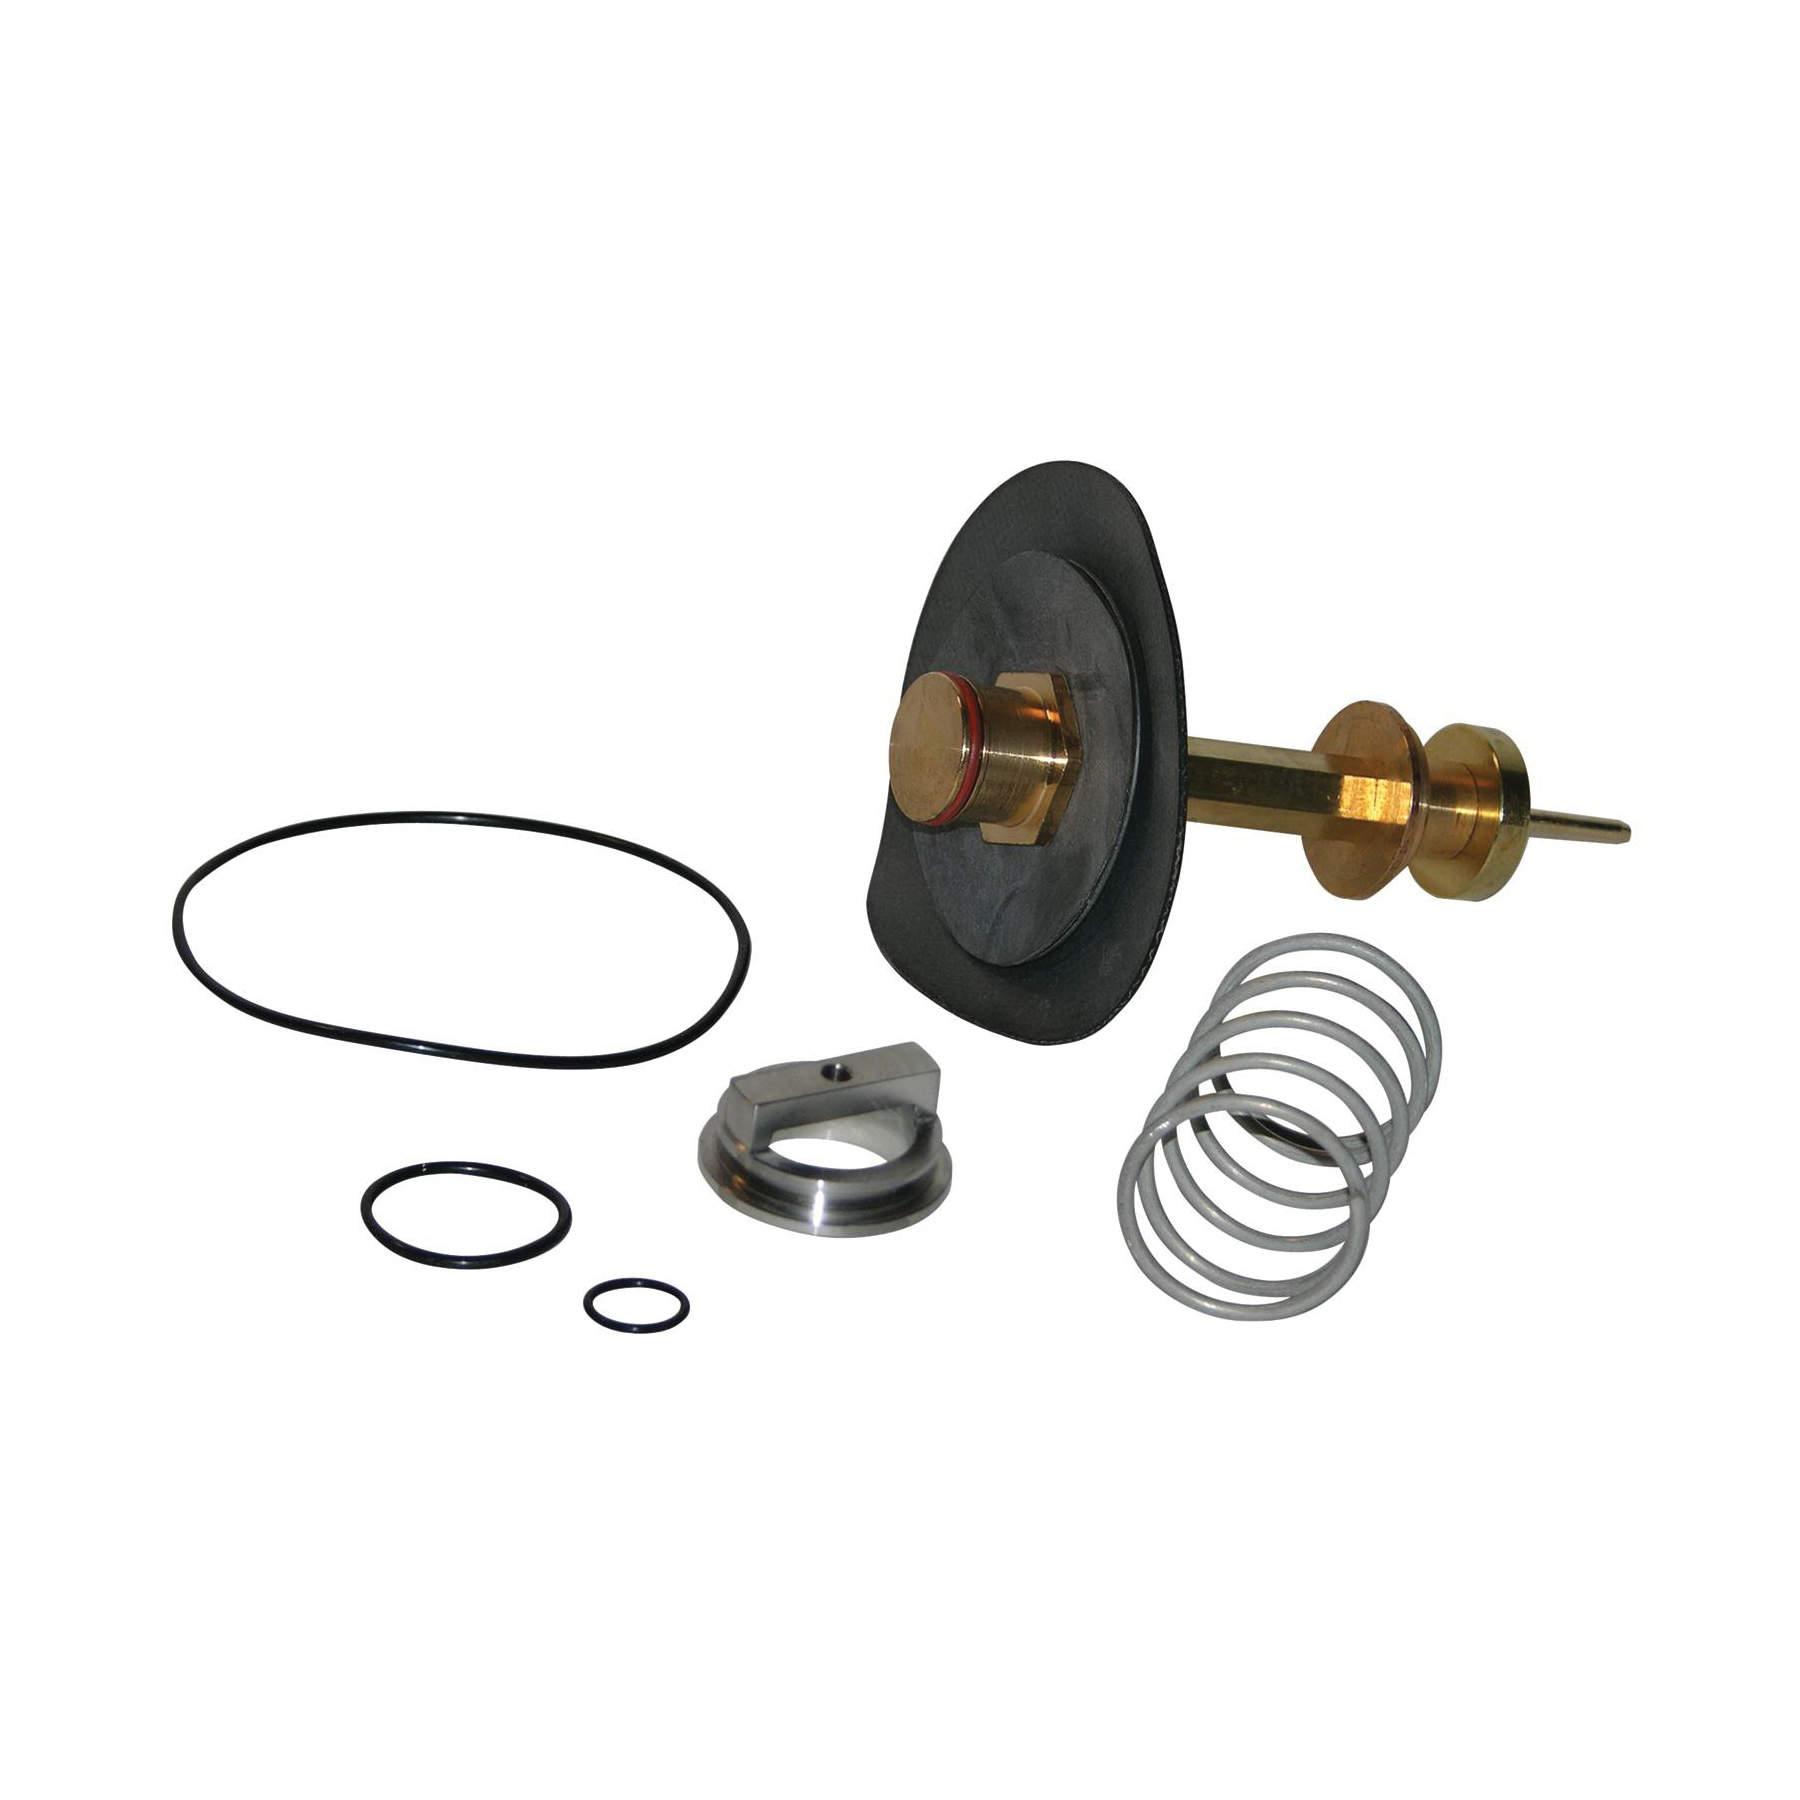 WATTS® 0887277 RK 009M1-VT Relief Valve Total Repair Kit, For Use With LF009M1 and 009M1 1-1/4 to 2 Reduced Pressure Zone Assembly